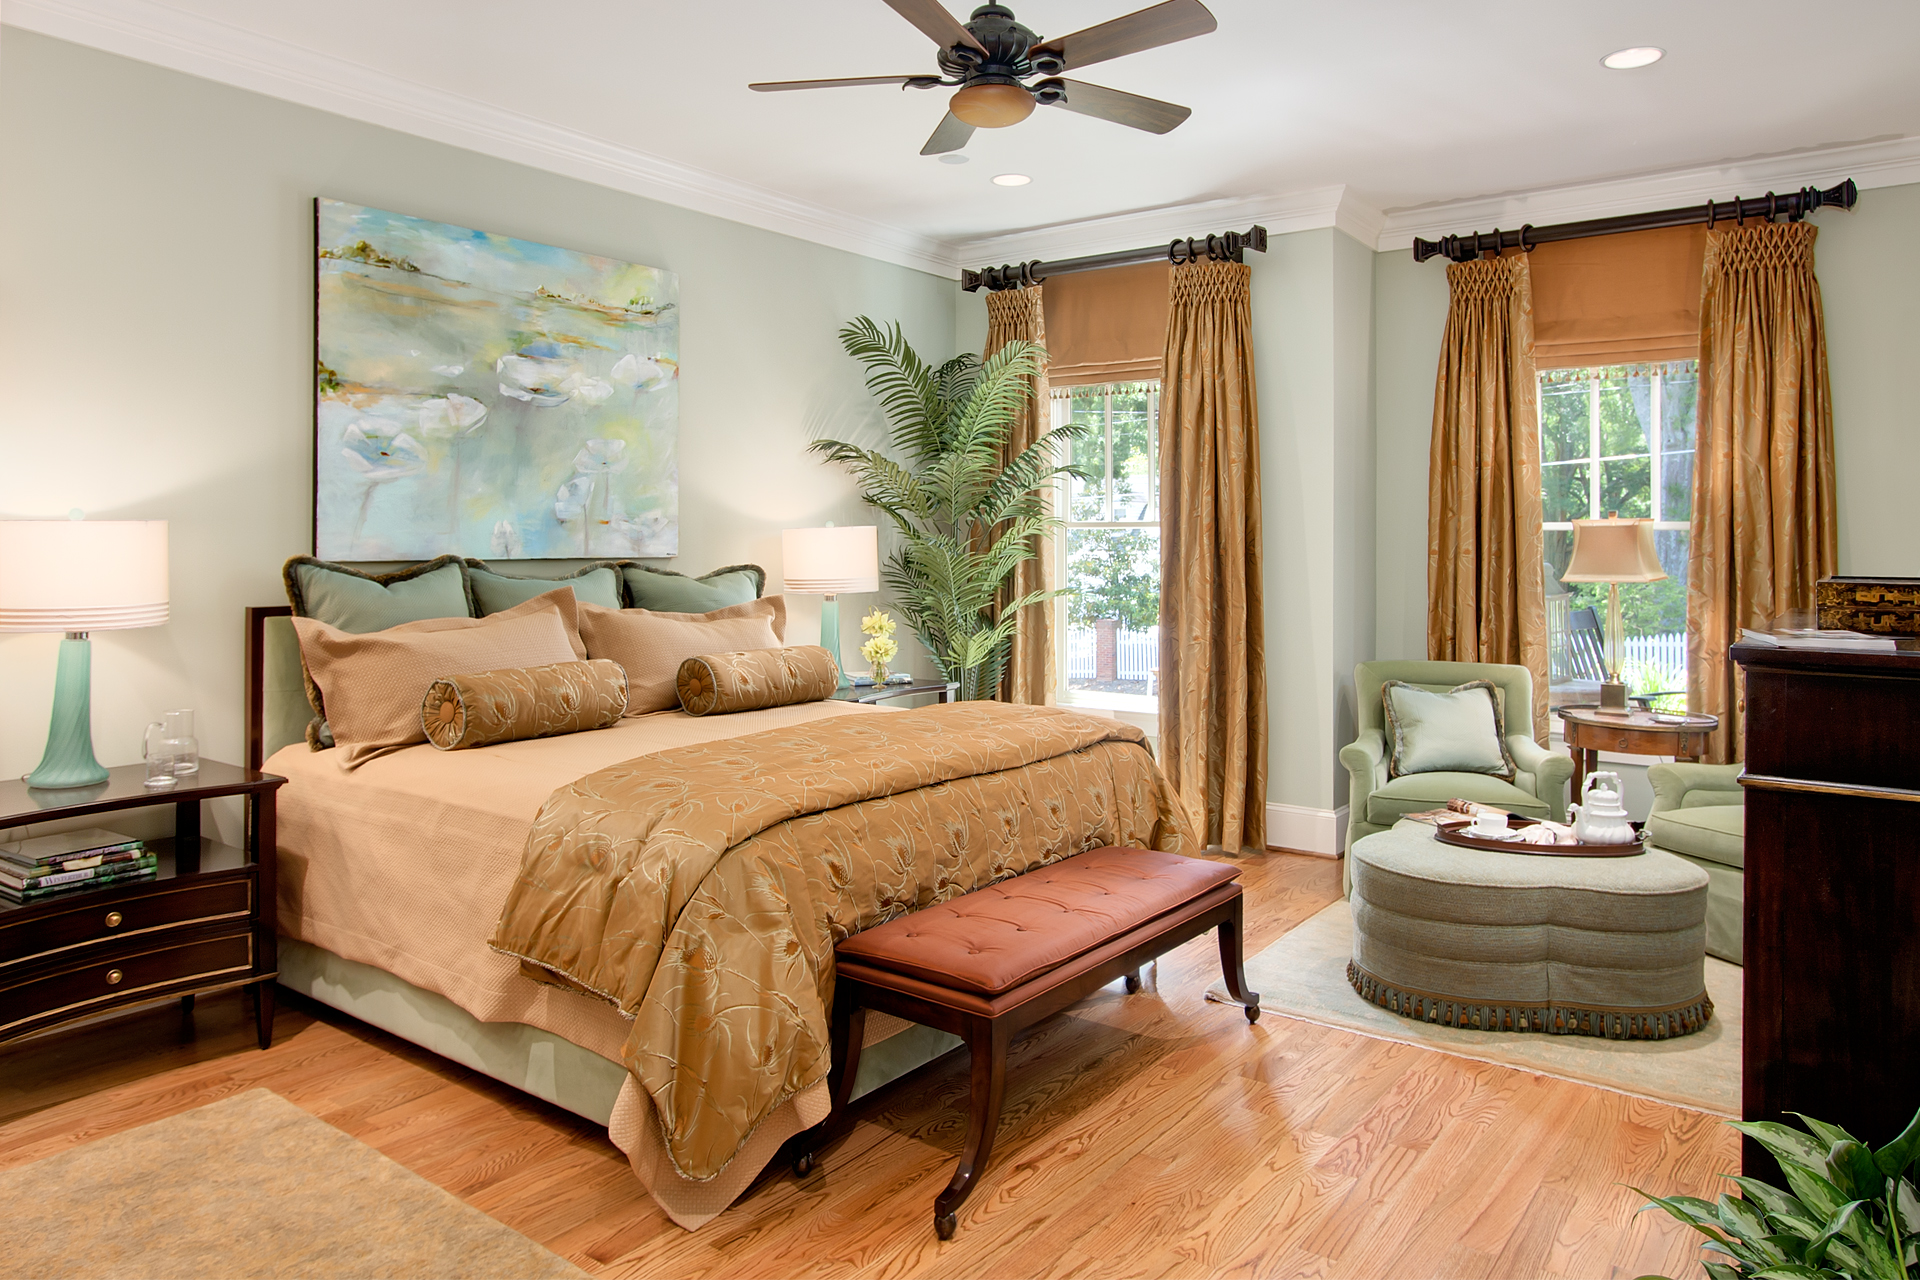 Show House Bedroom Atlanta Real Estate Photography Marietta Art Design Showhouse